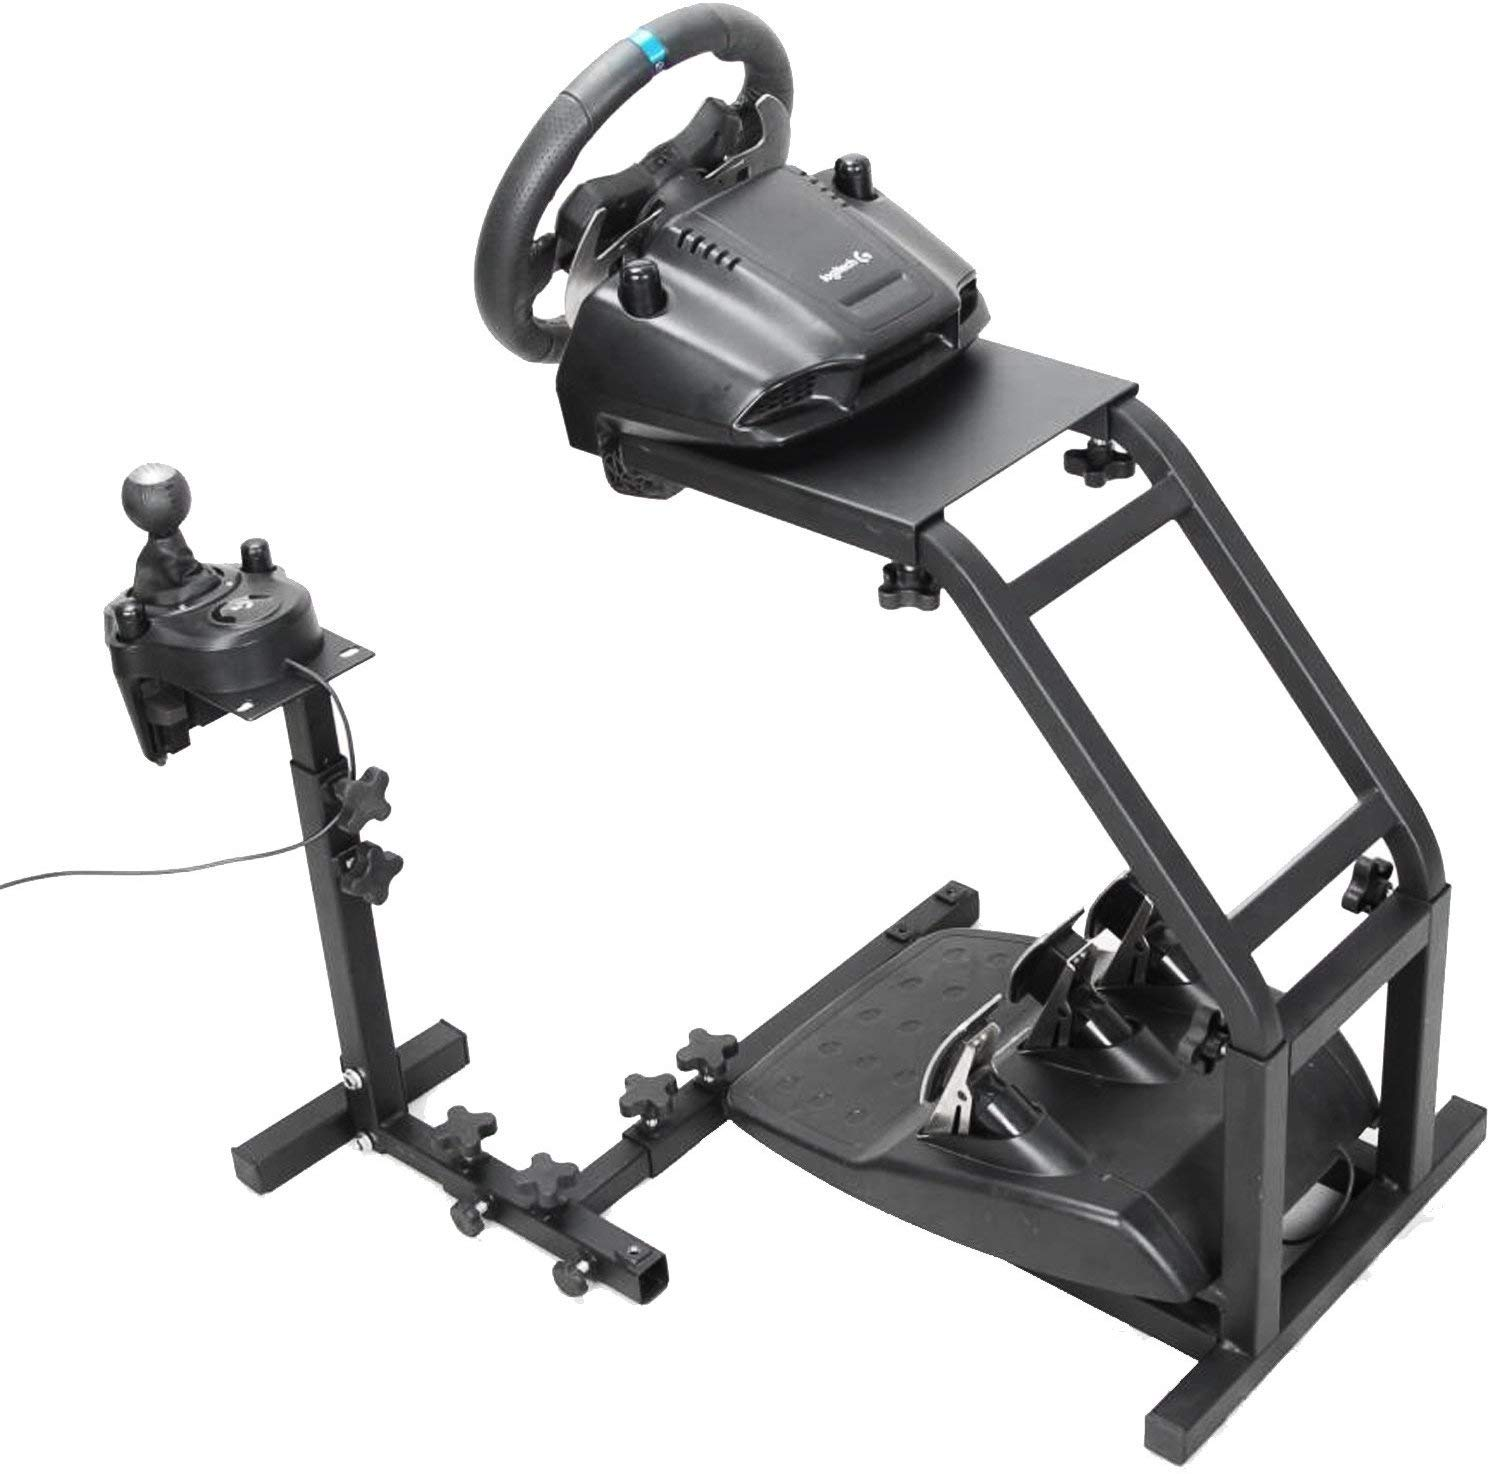 bf183639af0 Gloria Racing Steering Wheel Stand Pro with V2 Stand Up Simulation Driving  Bracket for Logitech G29